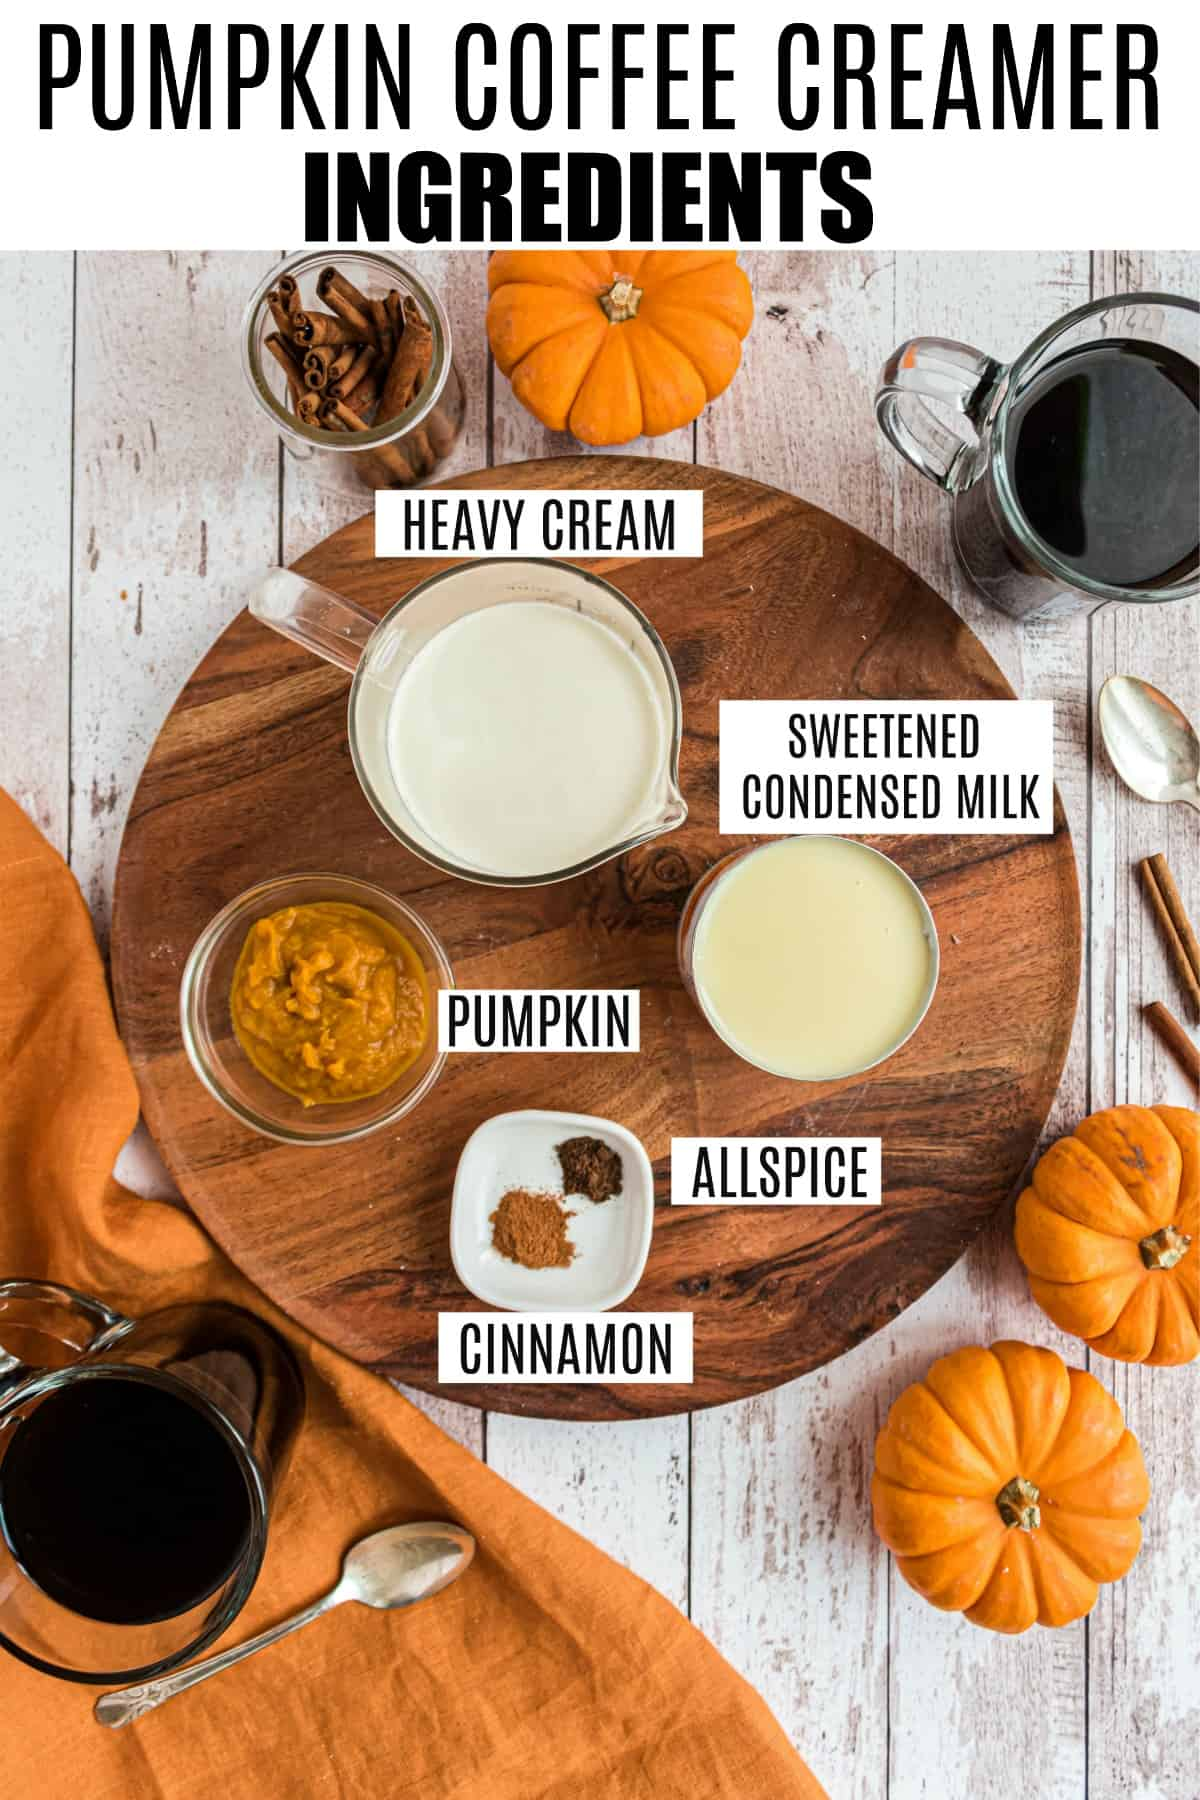 Ingredients needed to make homemade pumpkin spice creamer.